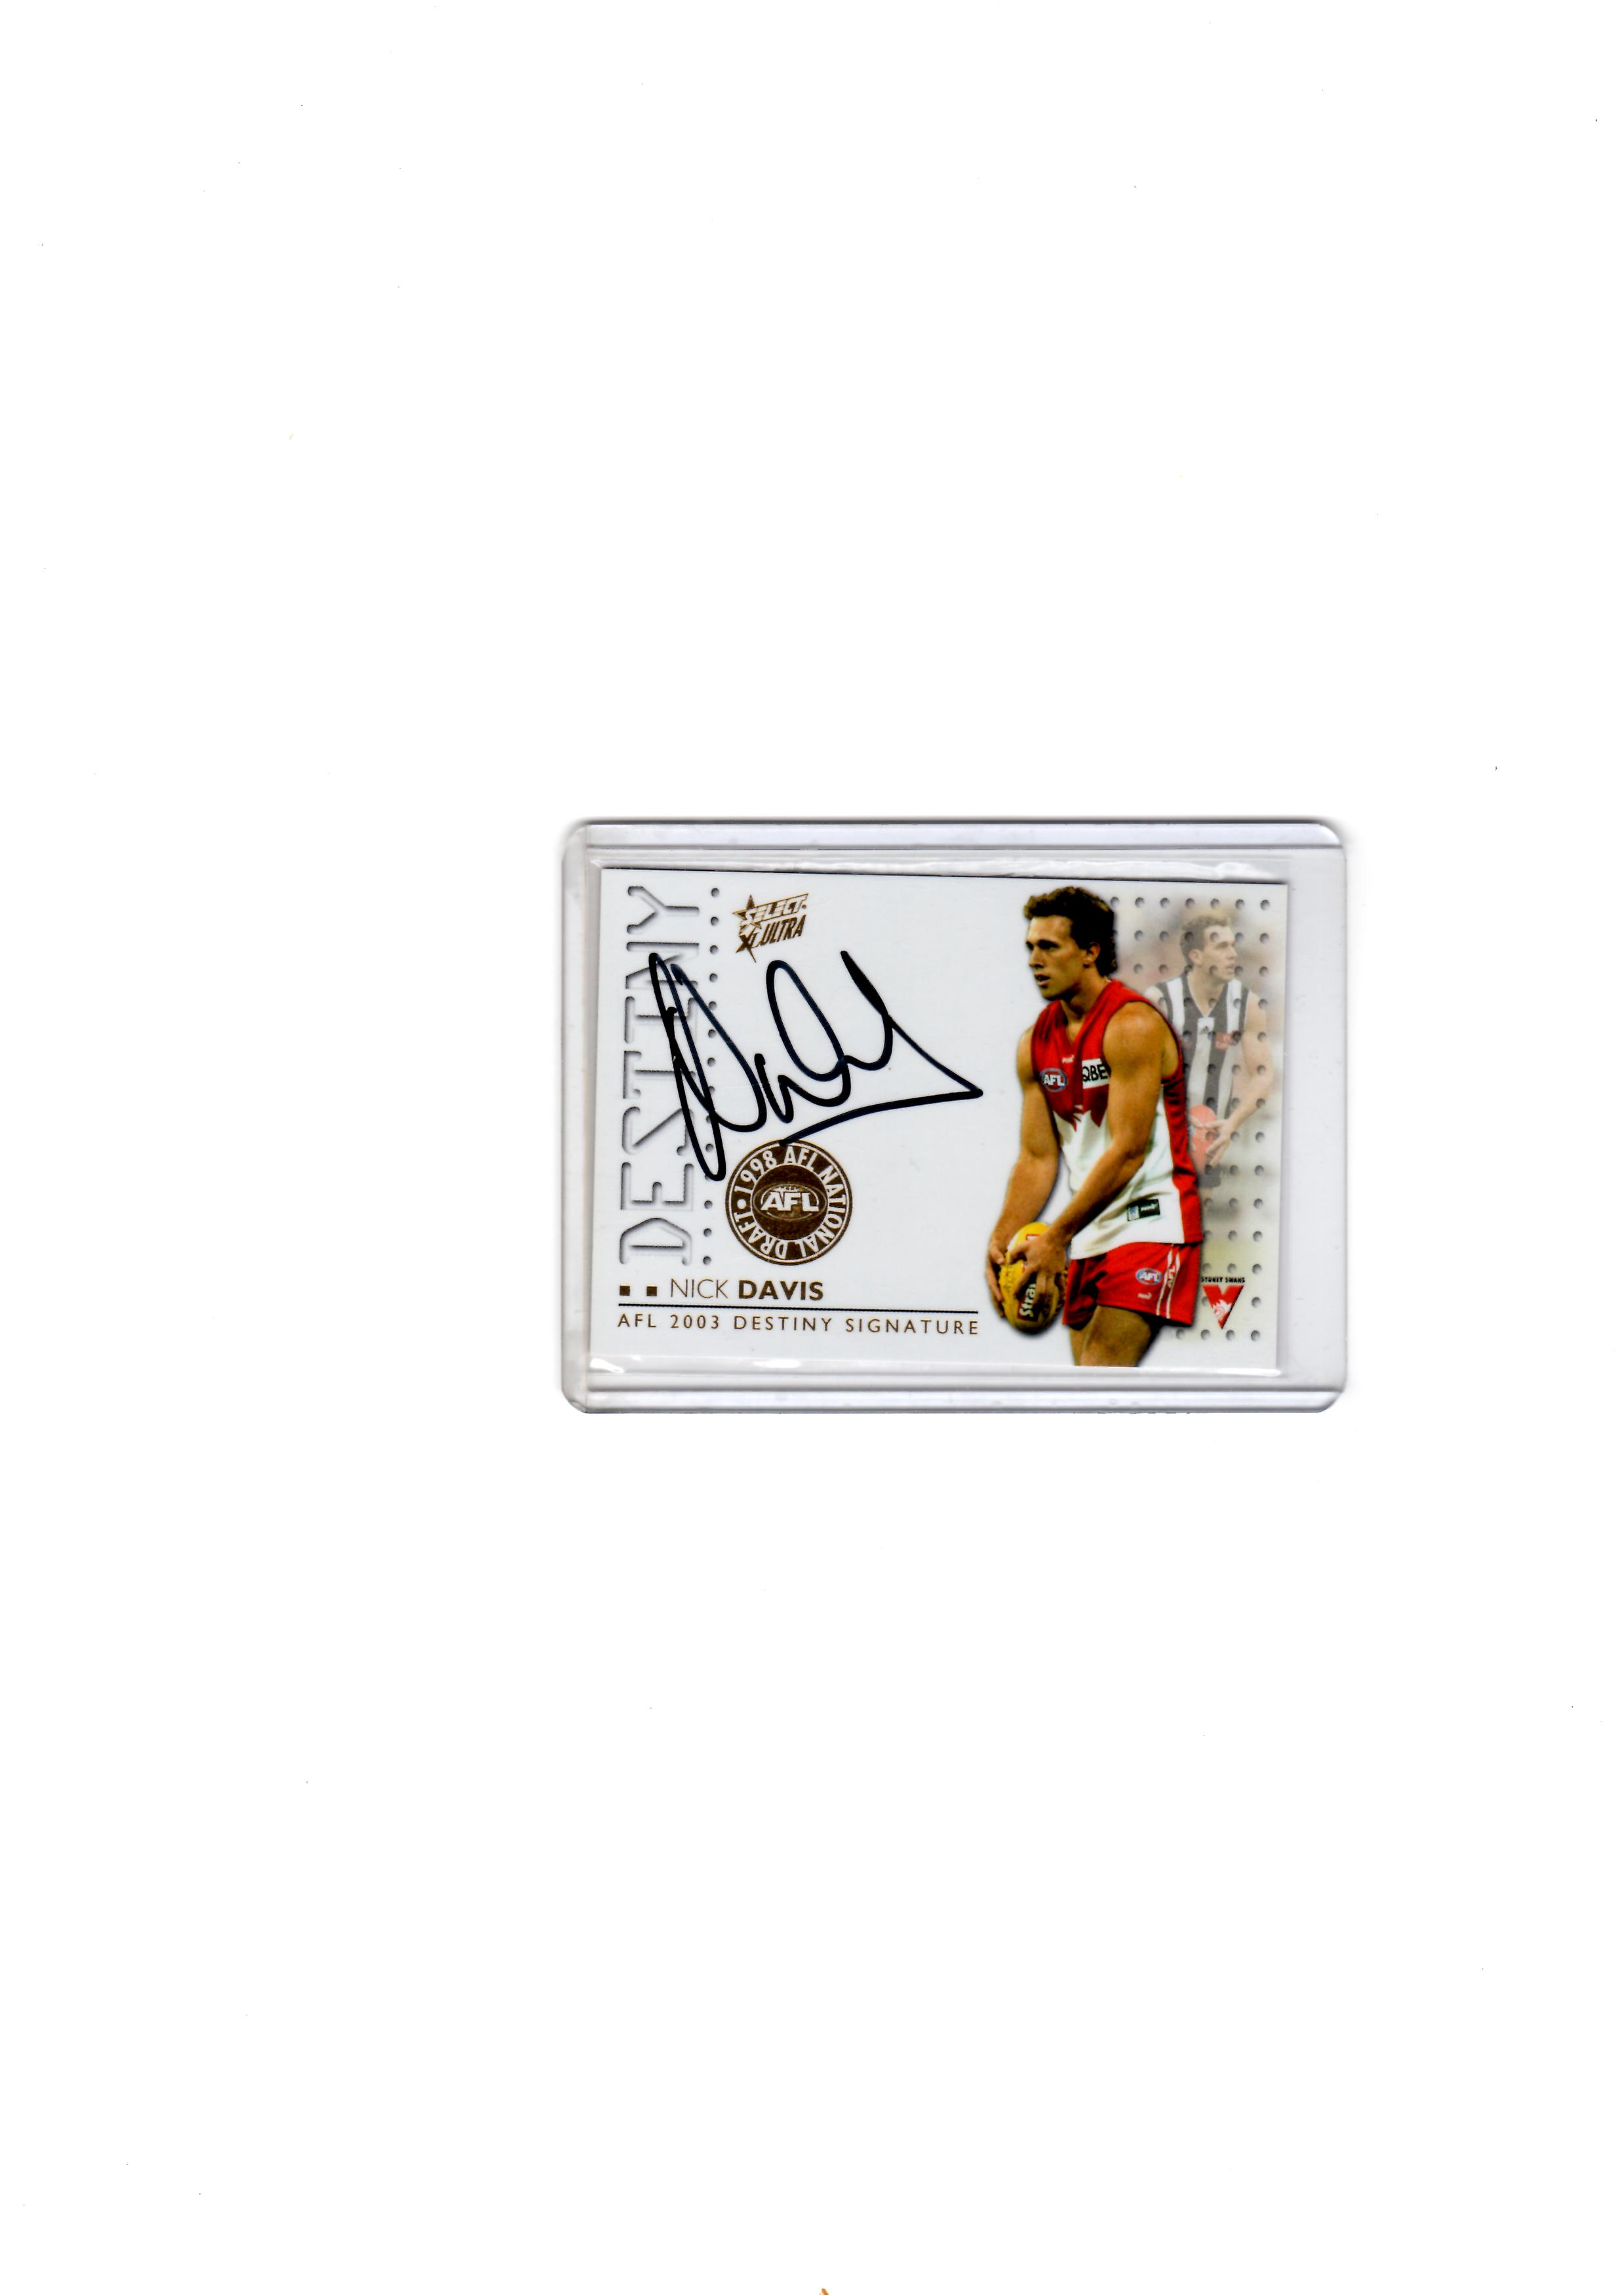 Swans Nick Davis Destiny signature